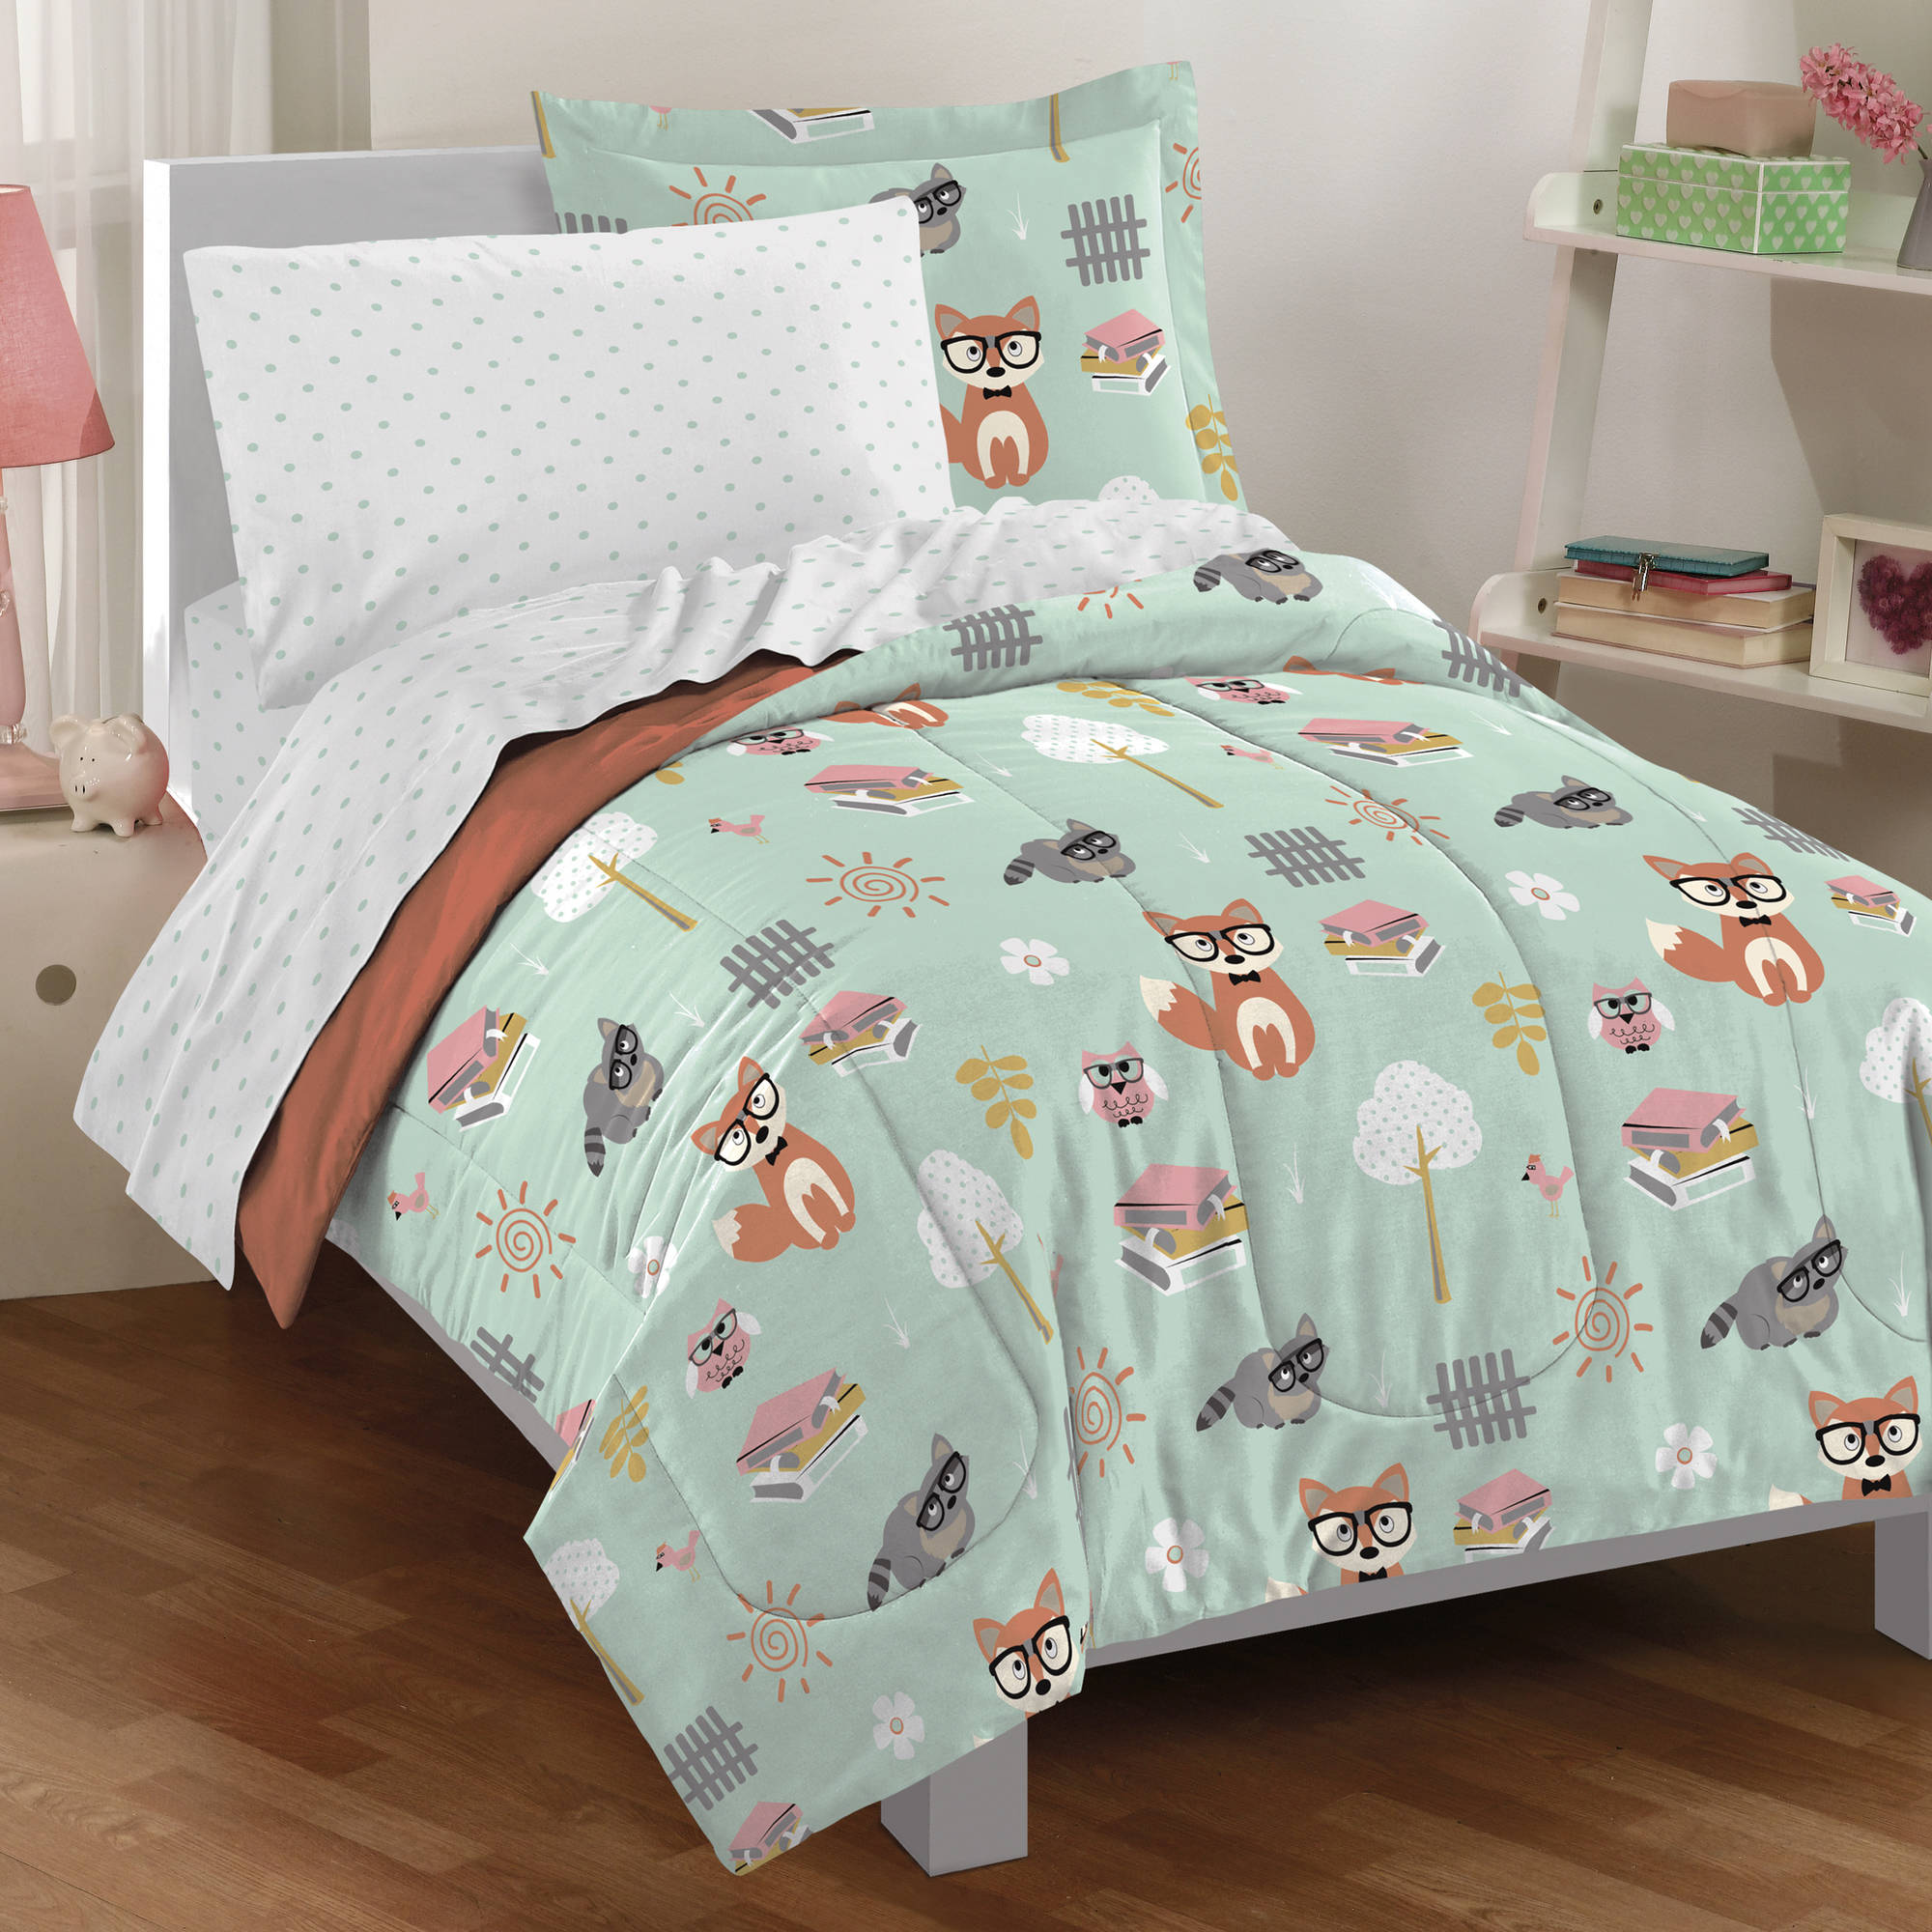 Dream Factory Woodland Friends Bed in a Bag, Green